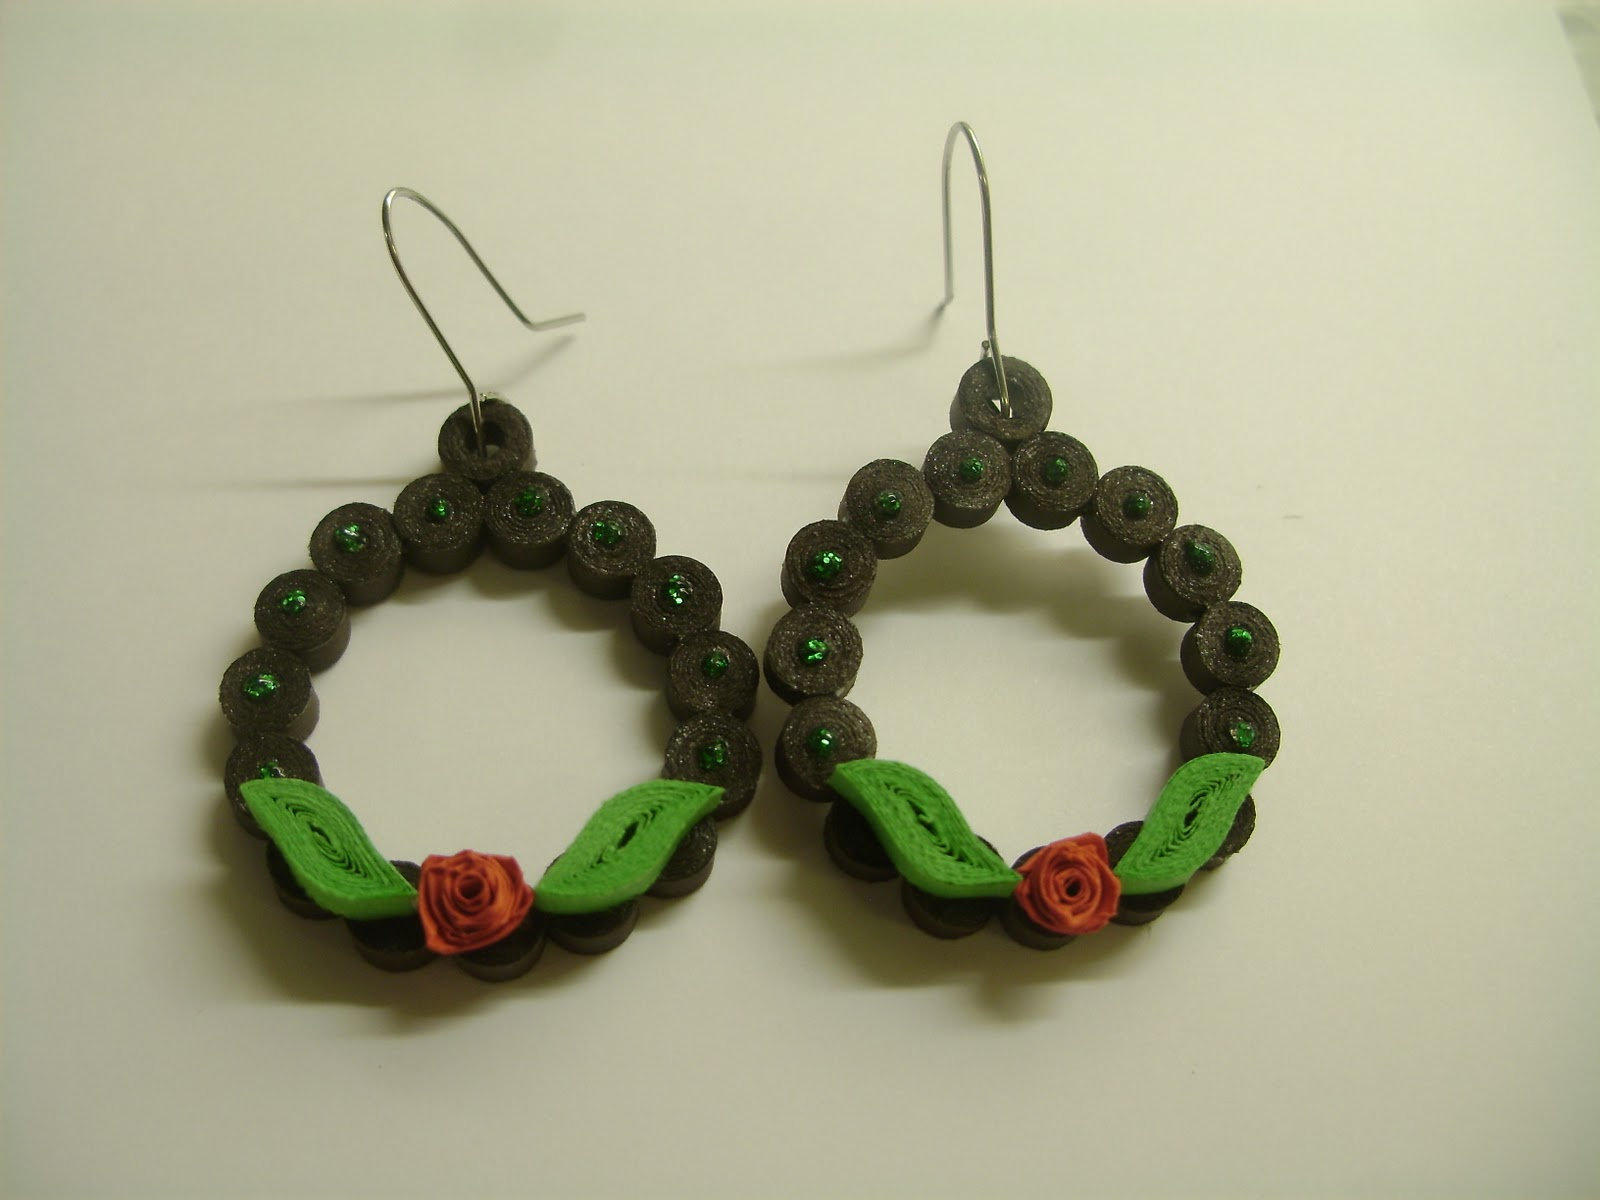 Quilling Earrings Designs Images : Quilling Me Softly: Quilled earrings